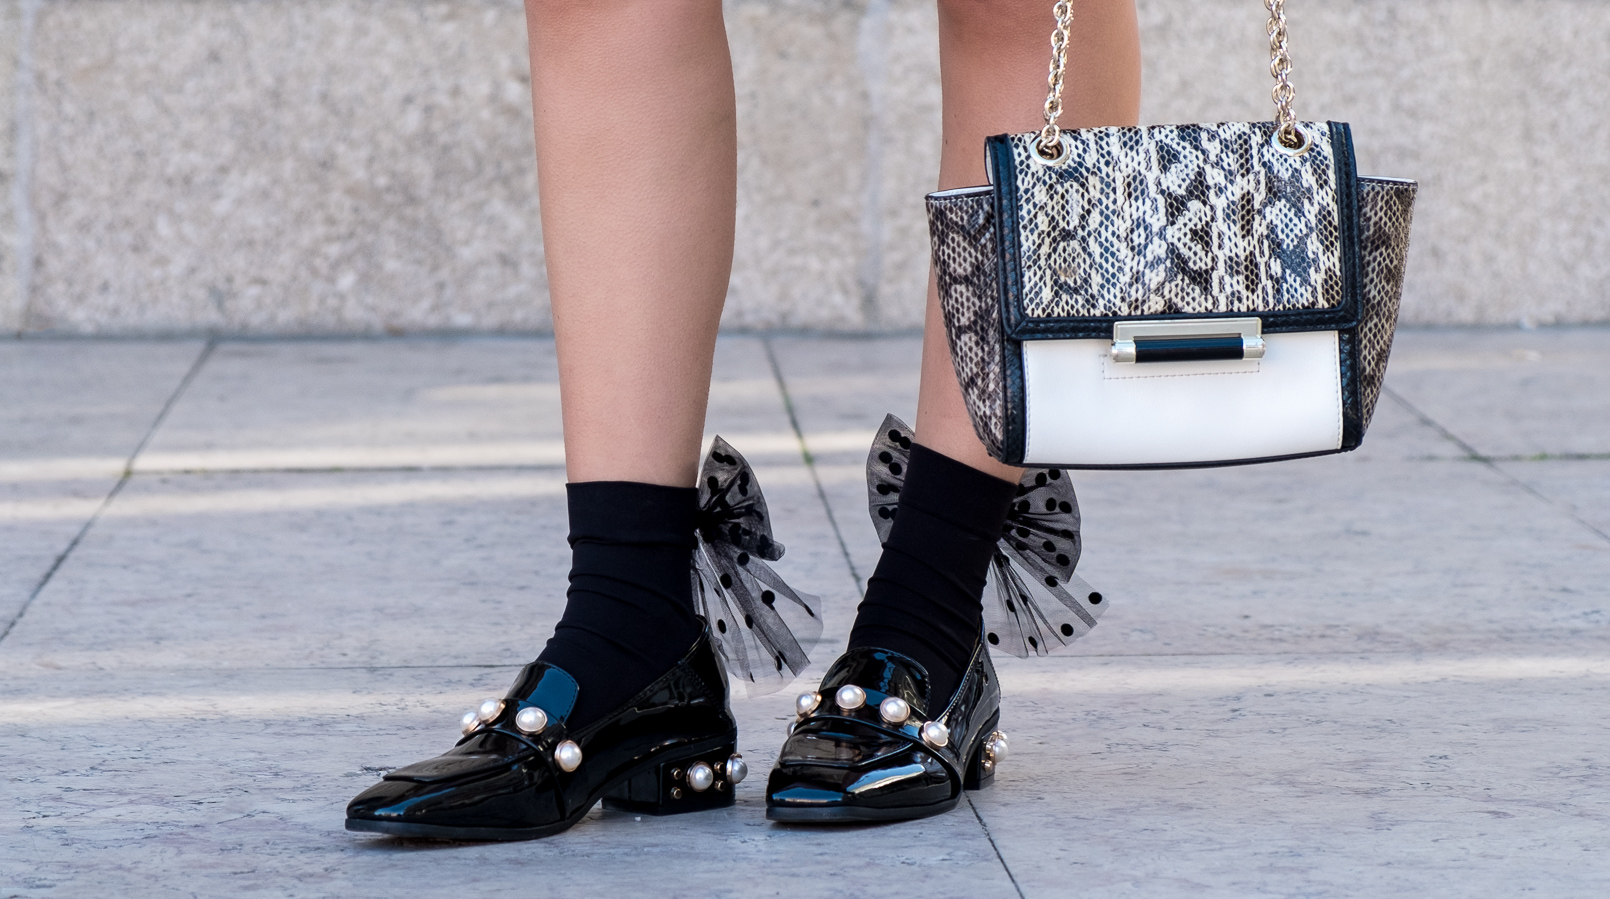 Le Fashionaire Where to find cool socks for fall? black big bow dots calzedonia socks vinil pearls shein black gold shoes white leather snake print diane von furstenberg bag 1829F EN